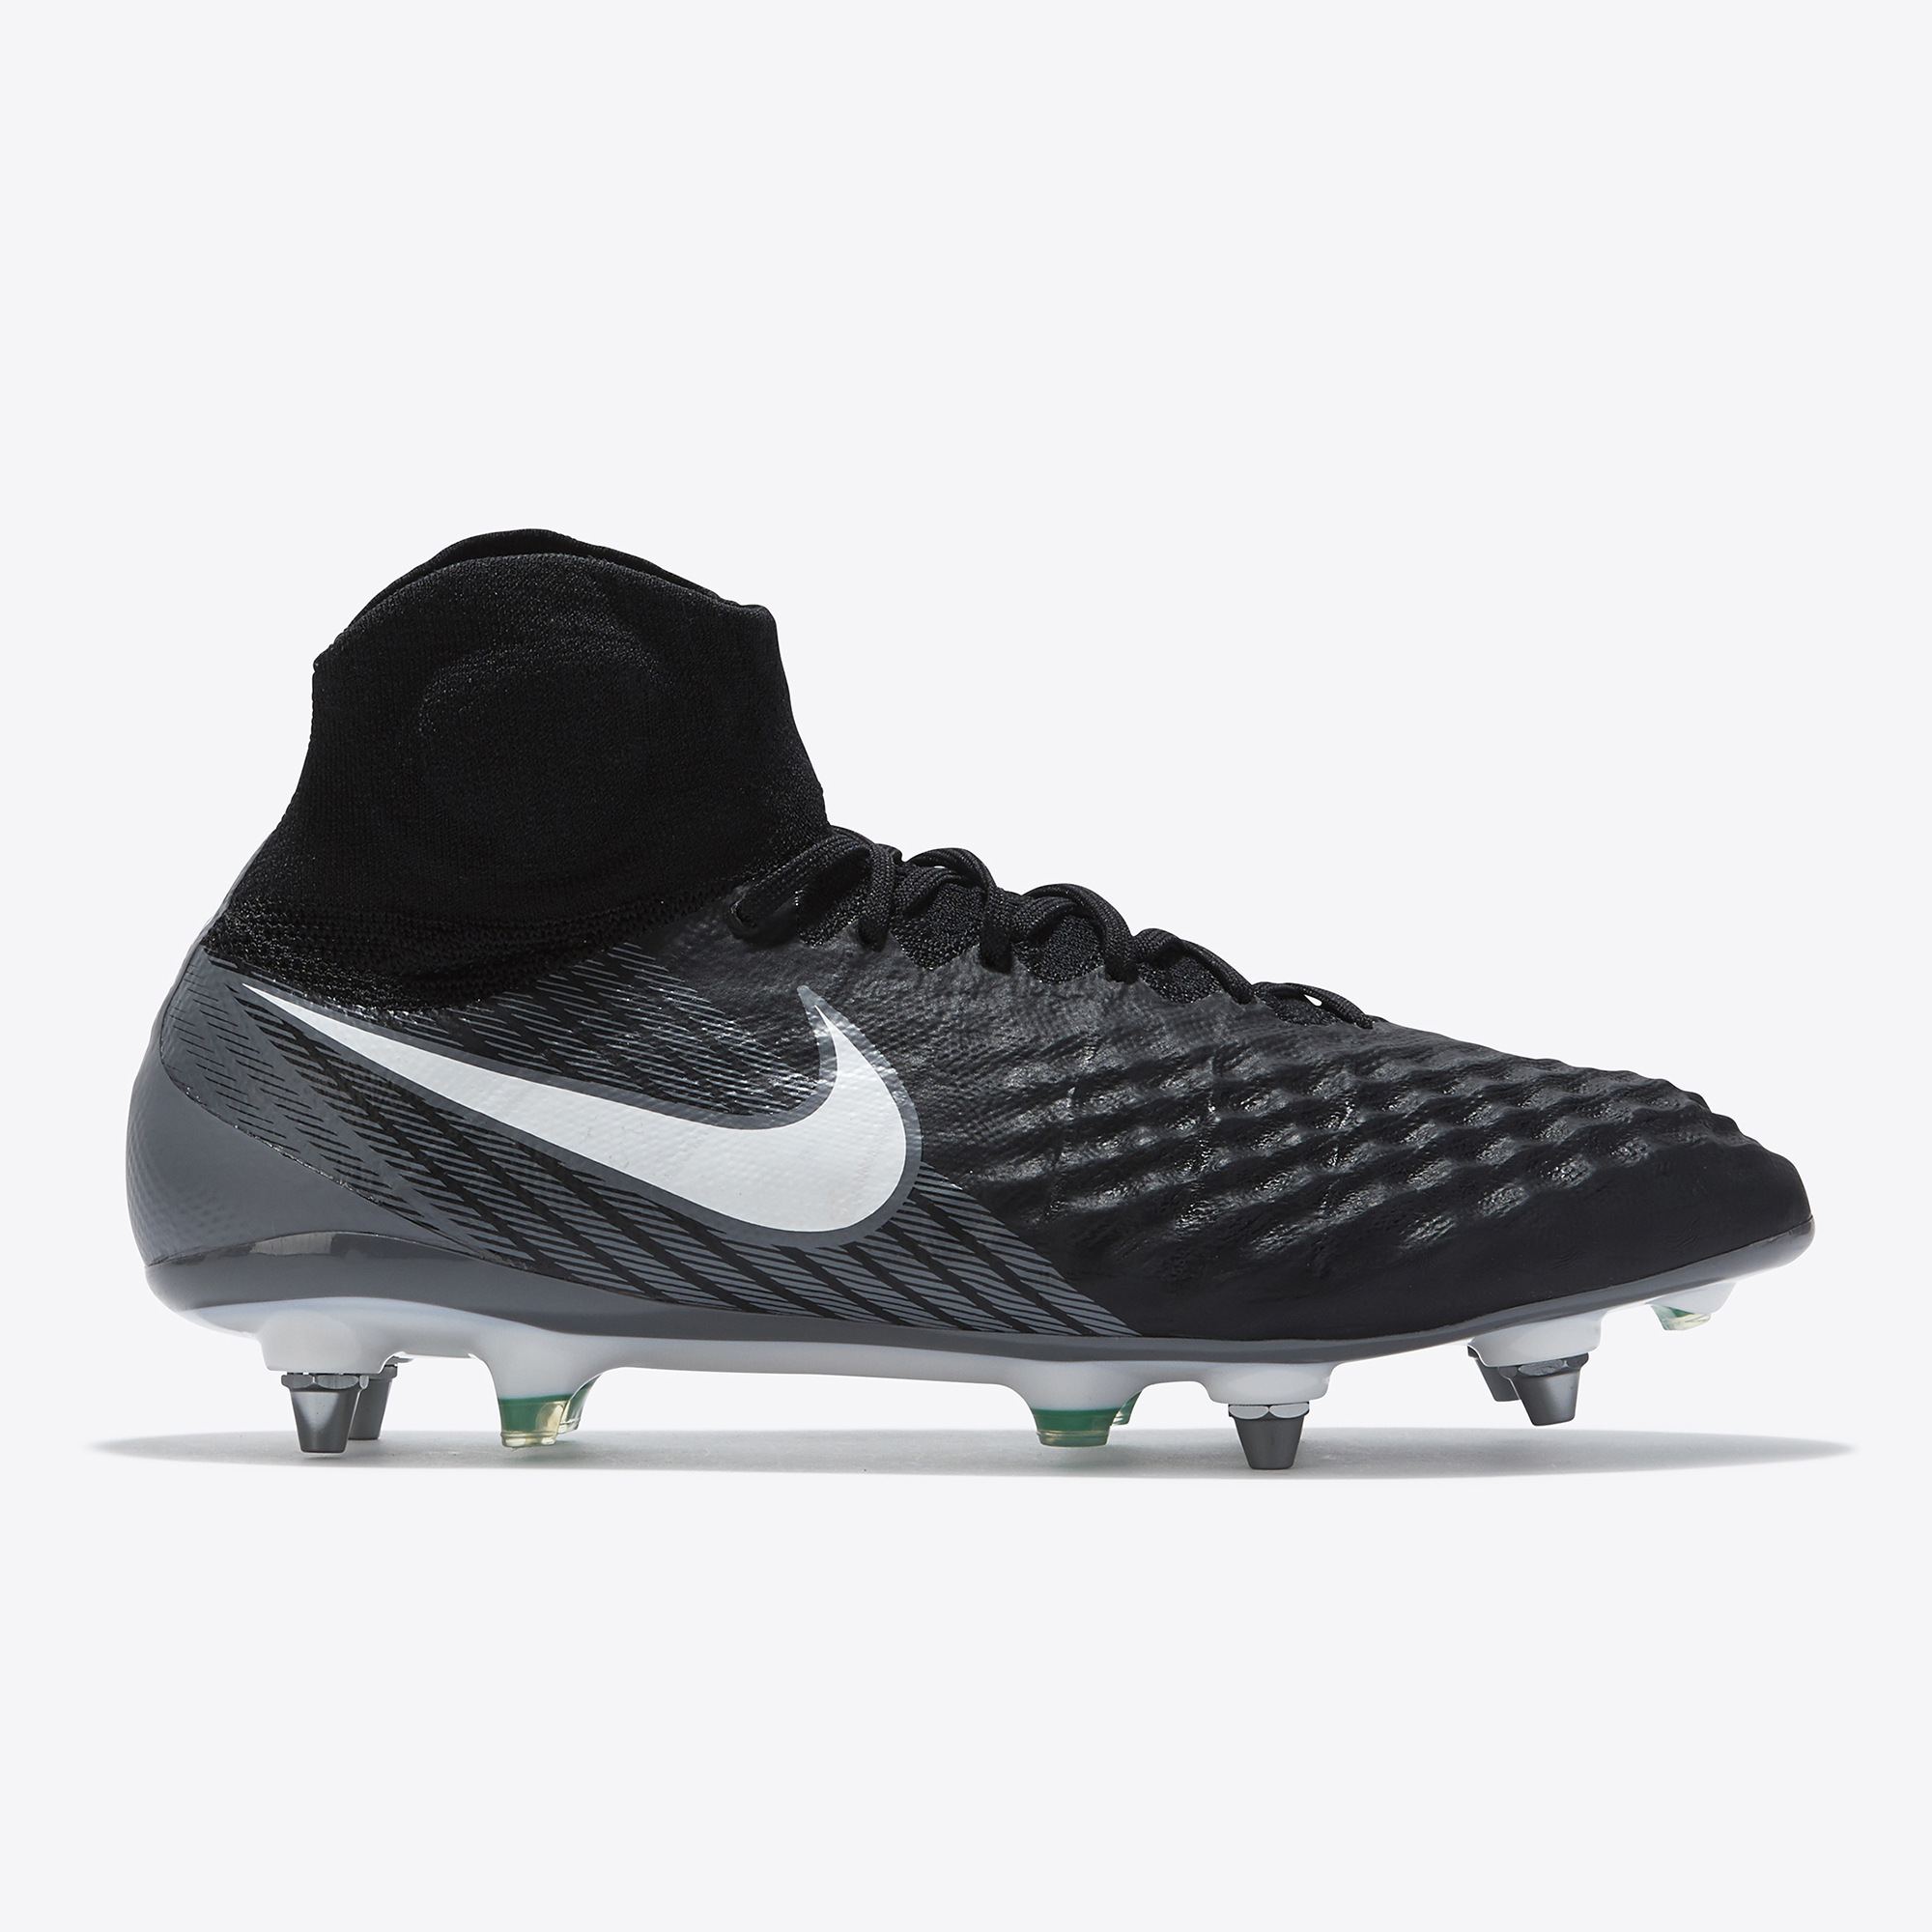 Nike Magista Obra II Soft Ground Football Boots - Black/White/Dark Gre